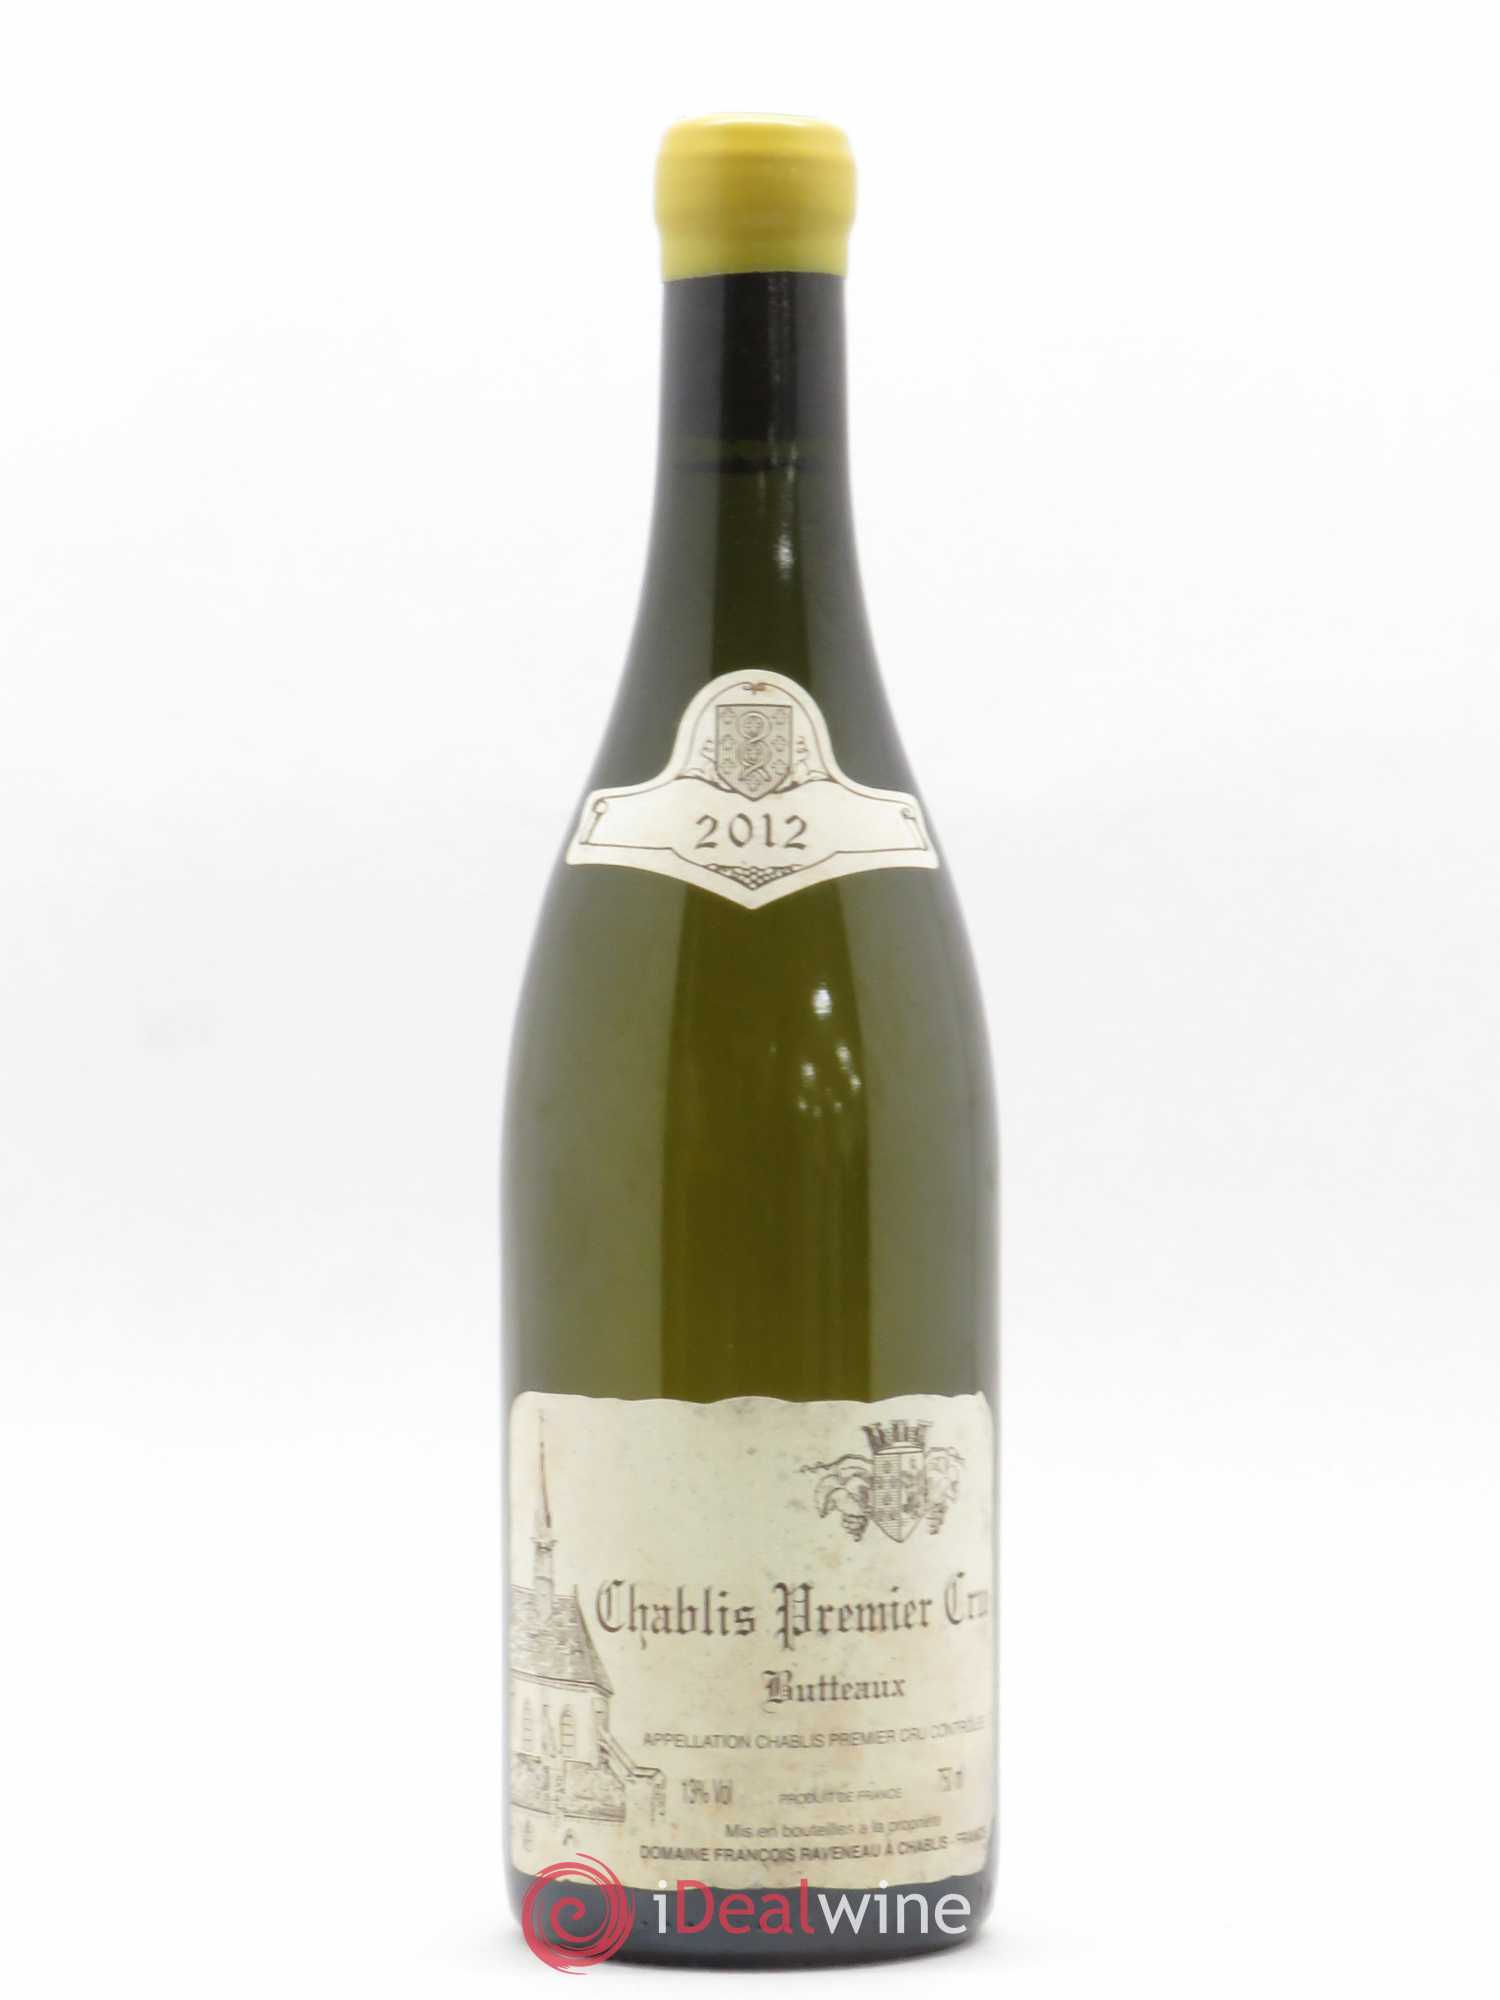 Chablis 1er Cru Butteaux Raveneau (Domaine)  2012 - Lot of 1 Bottle